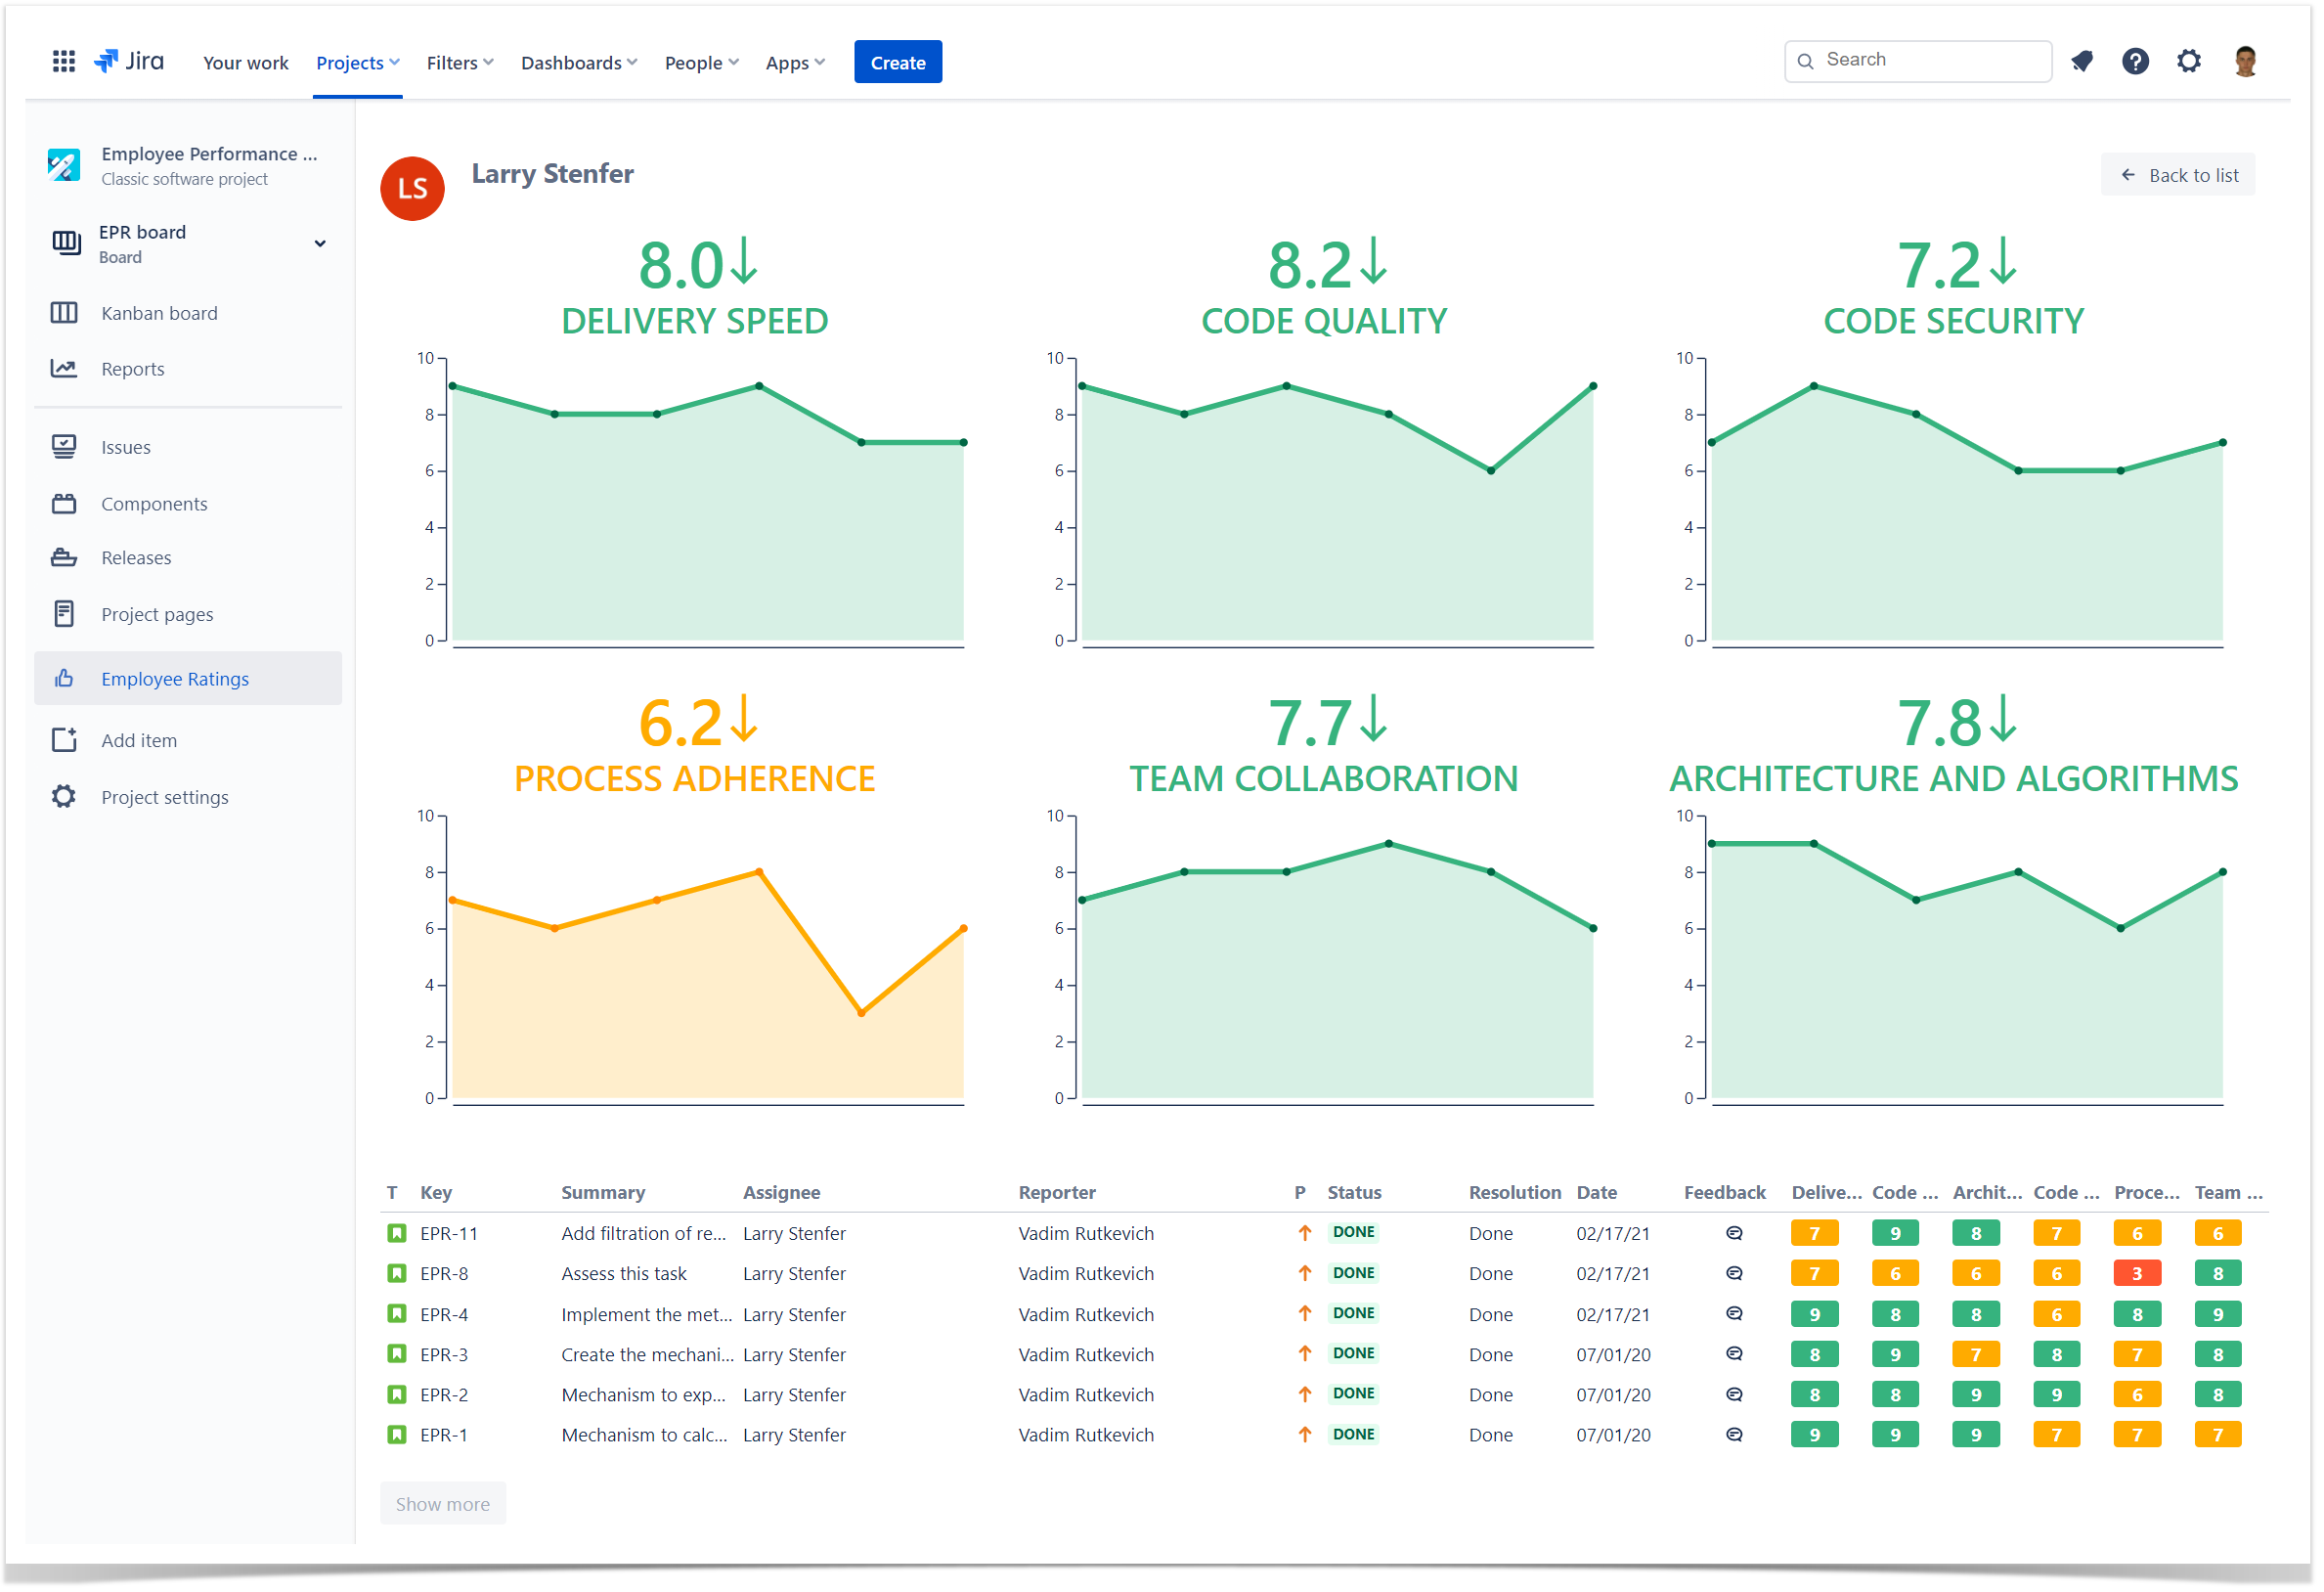 Track the individual employee performance in each project